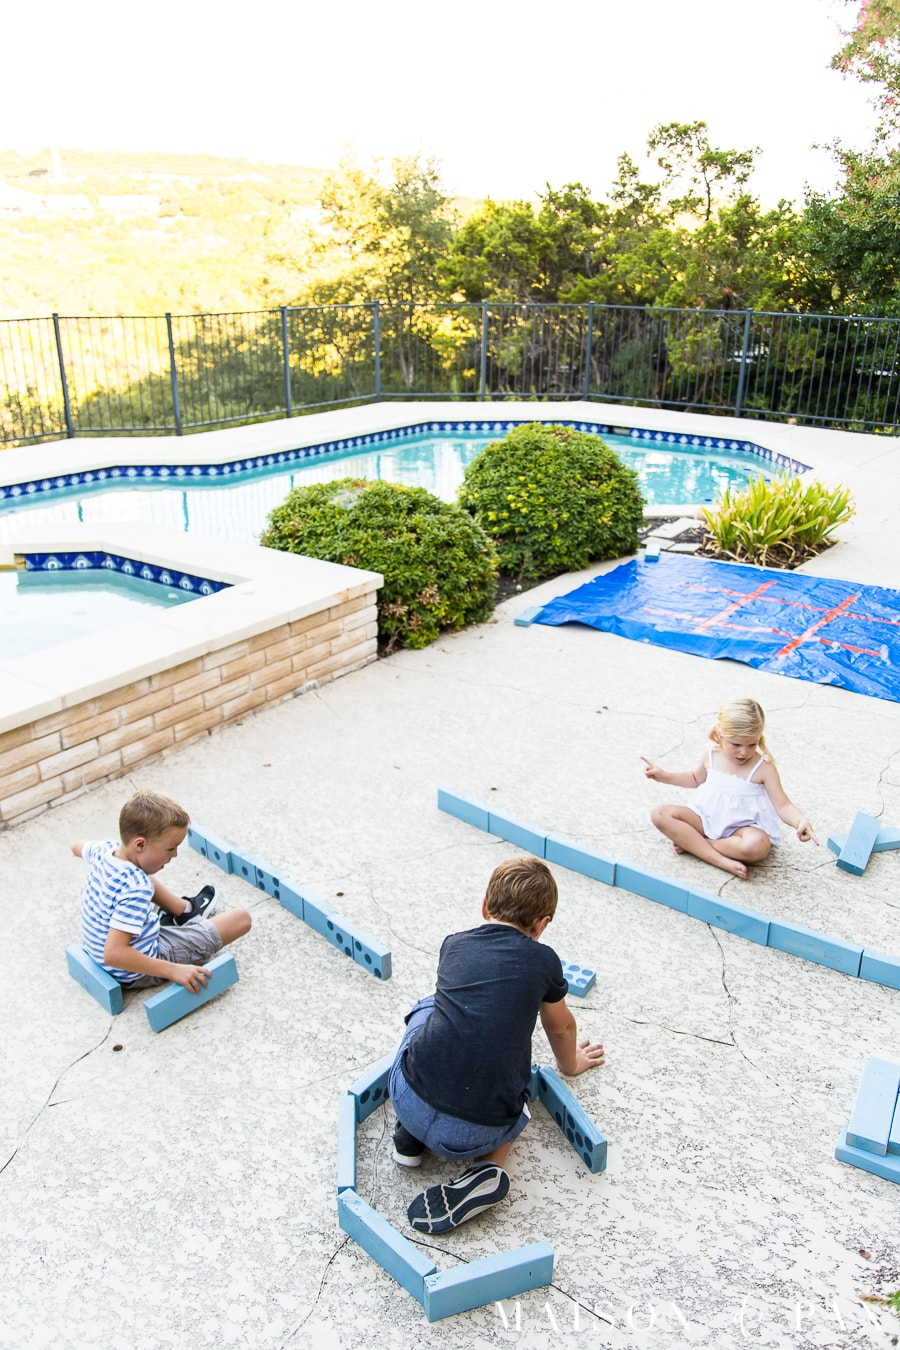 Make giant dominoes and tic tac toe with your kids: find this and other family projects plus tips for completing project with kids! #familyfun #familyproject #outdoorgames #kidfriendlyproject #diyproject